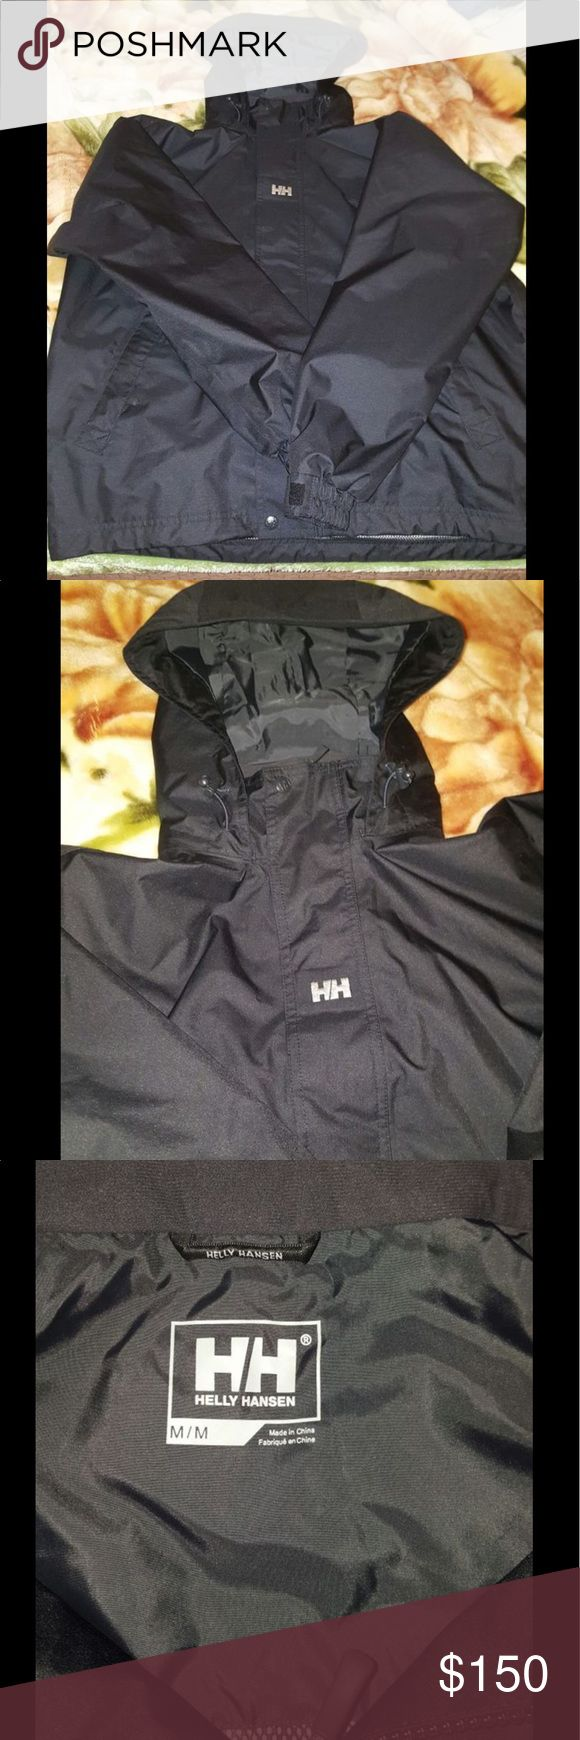 Mens Helly Hansen Coat NWOT..NEVER WORE..DONT HAVE TAGS SO I COULDN'T RETURN IN STORE..BLACK. VERY WARM. WATER PROOF. HIDDEN POCKET INSIDE. SIZE MEDIUM. HOOD CAN BE FOLDED DOWN AND HIDDEN . OPEN TO OFFERS Helly Hansen Jackets & Coats